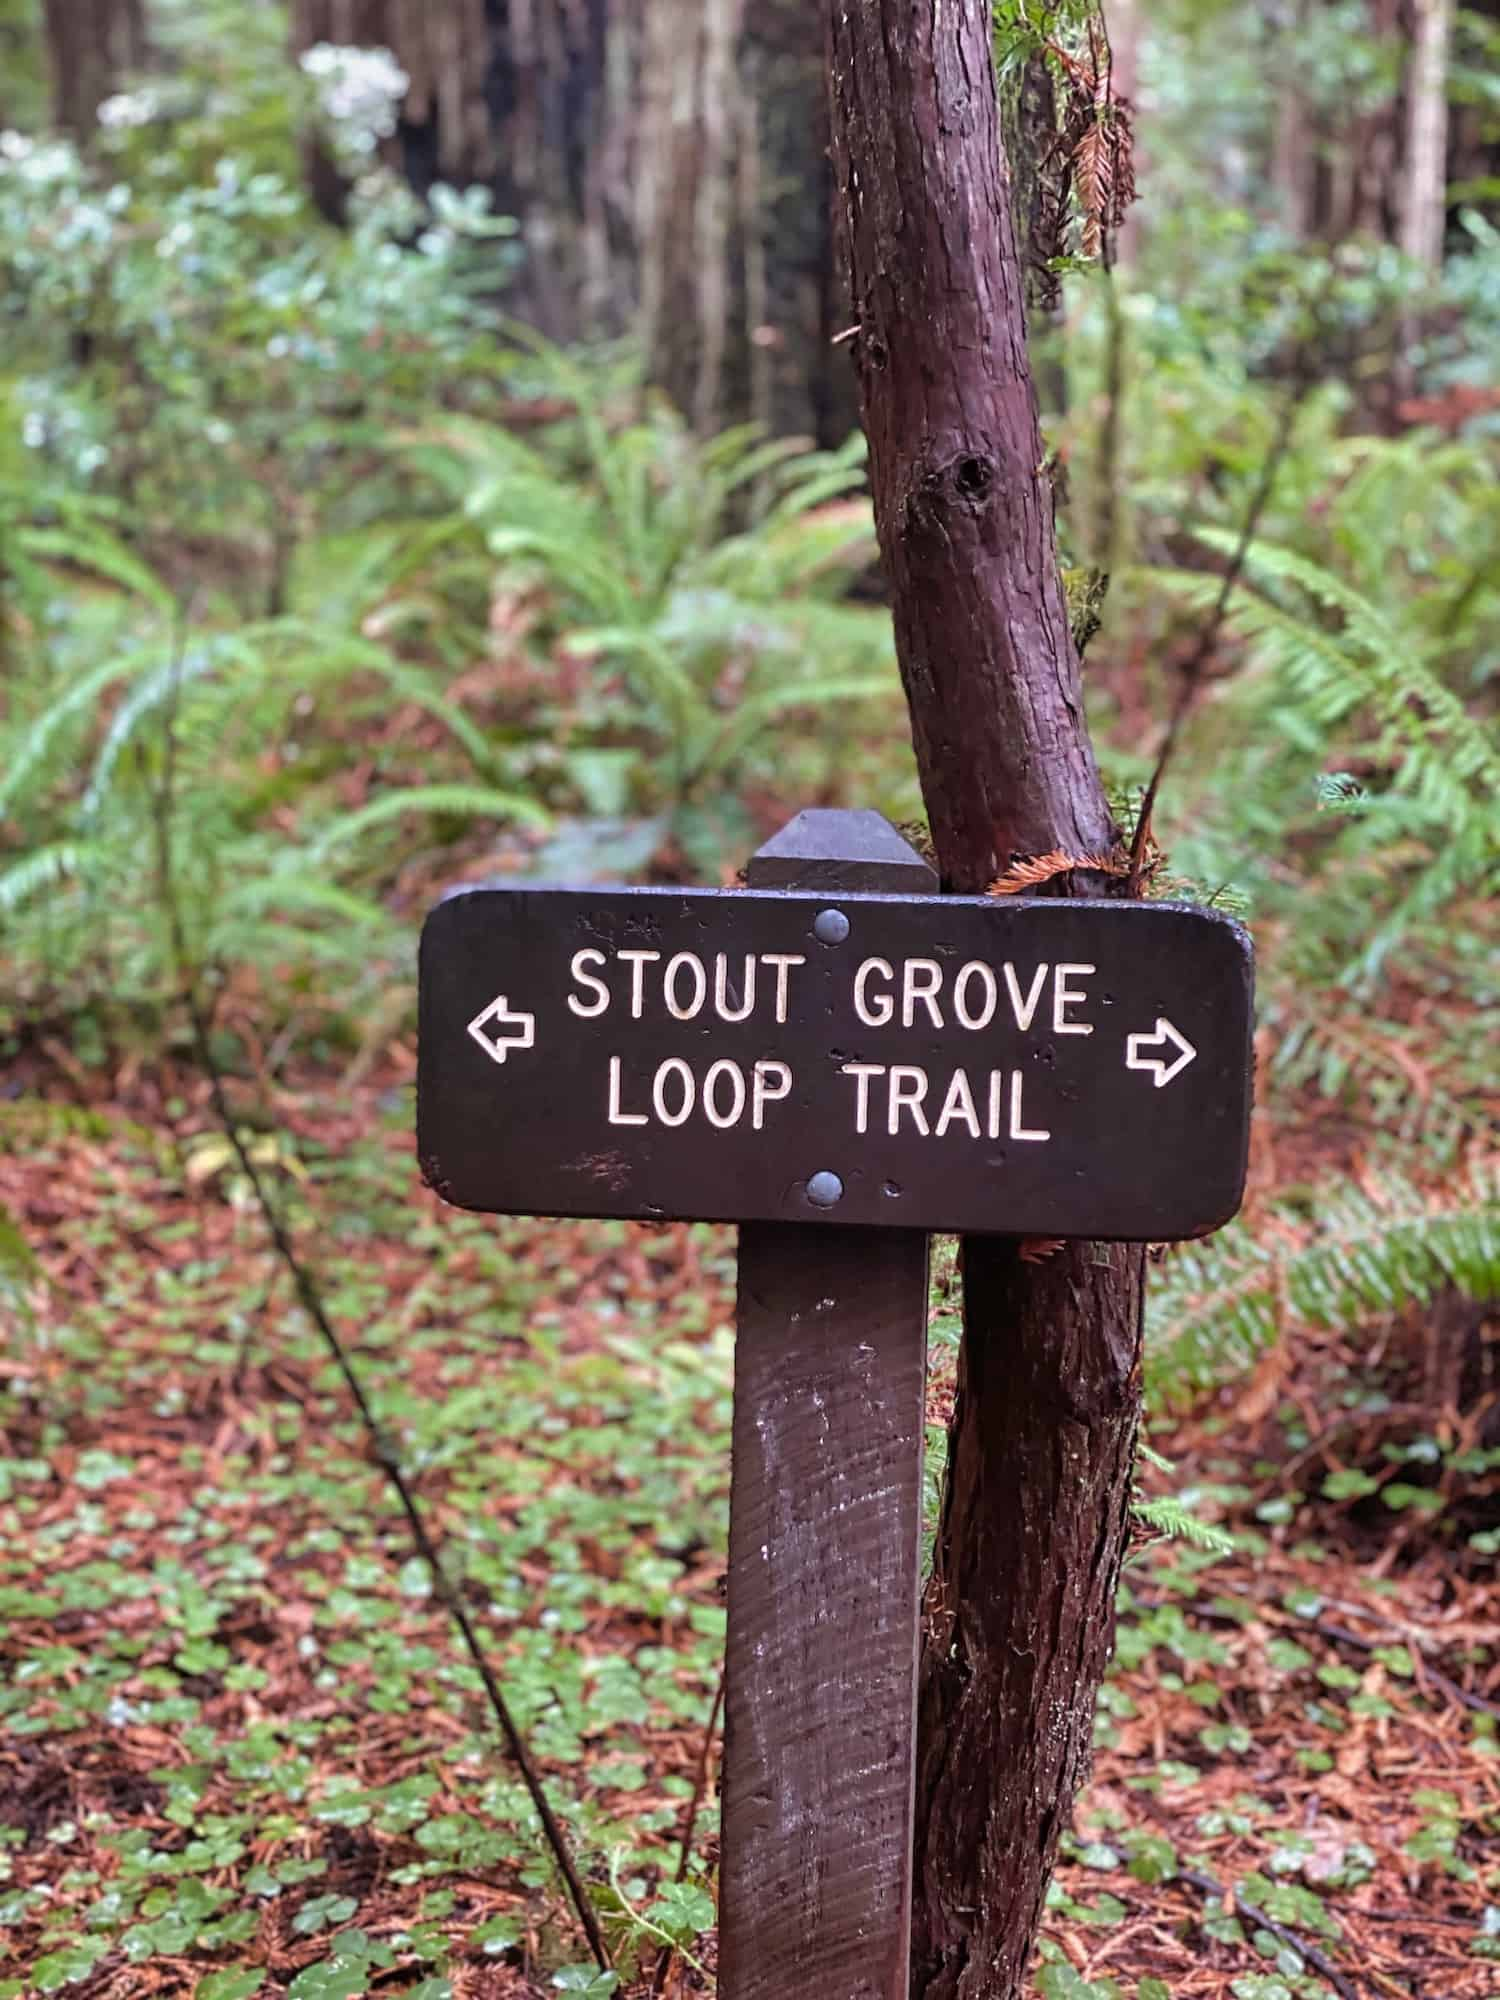 Things to Do in Crescent City - Stout Grove